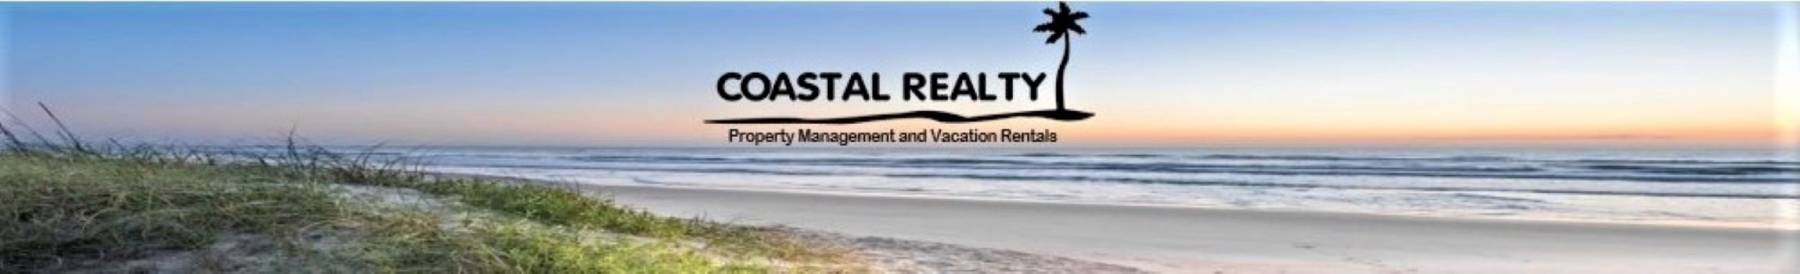 coastal realty vacation rentals in st augustine